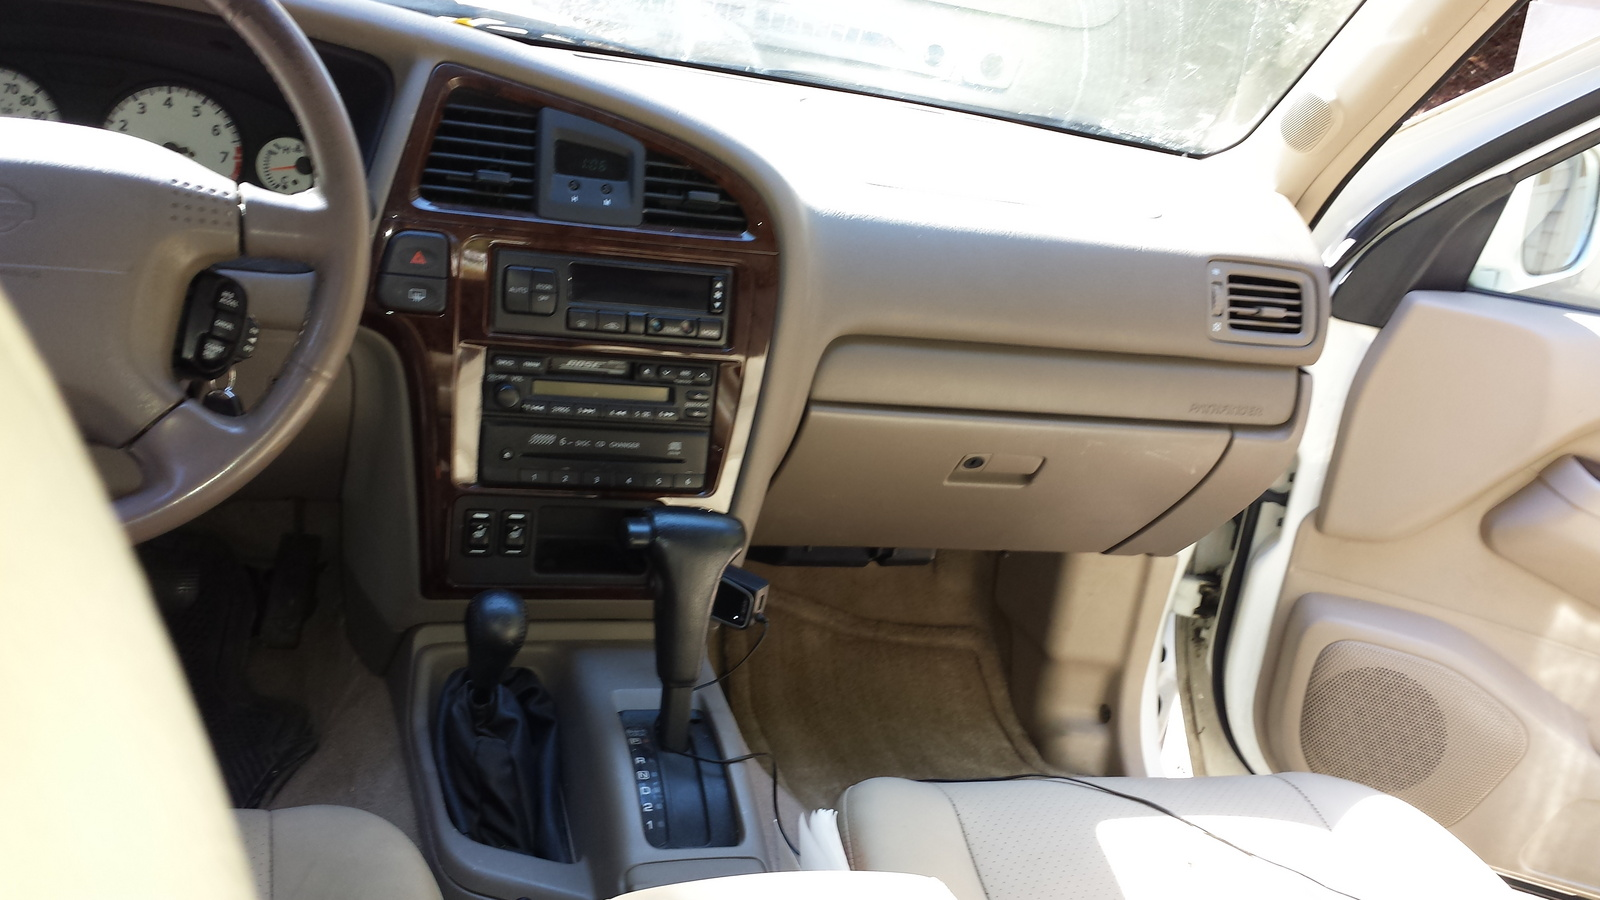 1987 Nissan Pickup Pictures C7517 further Watch201103 additionally 1988 Nissan Pulsar Wiring Diagram moreover 2018 Ford Excursion in addition 1987 Nissan Pulsar. on 87 nissan pulsar nx interior